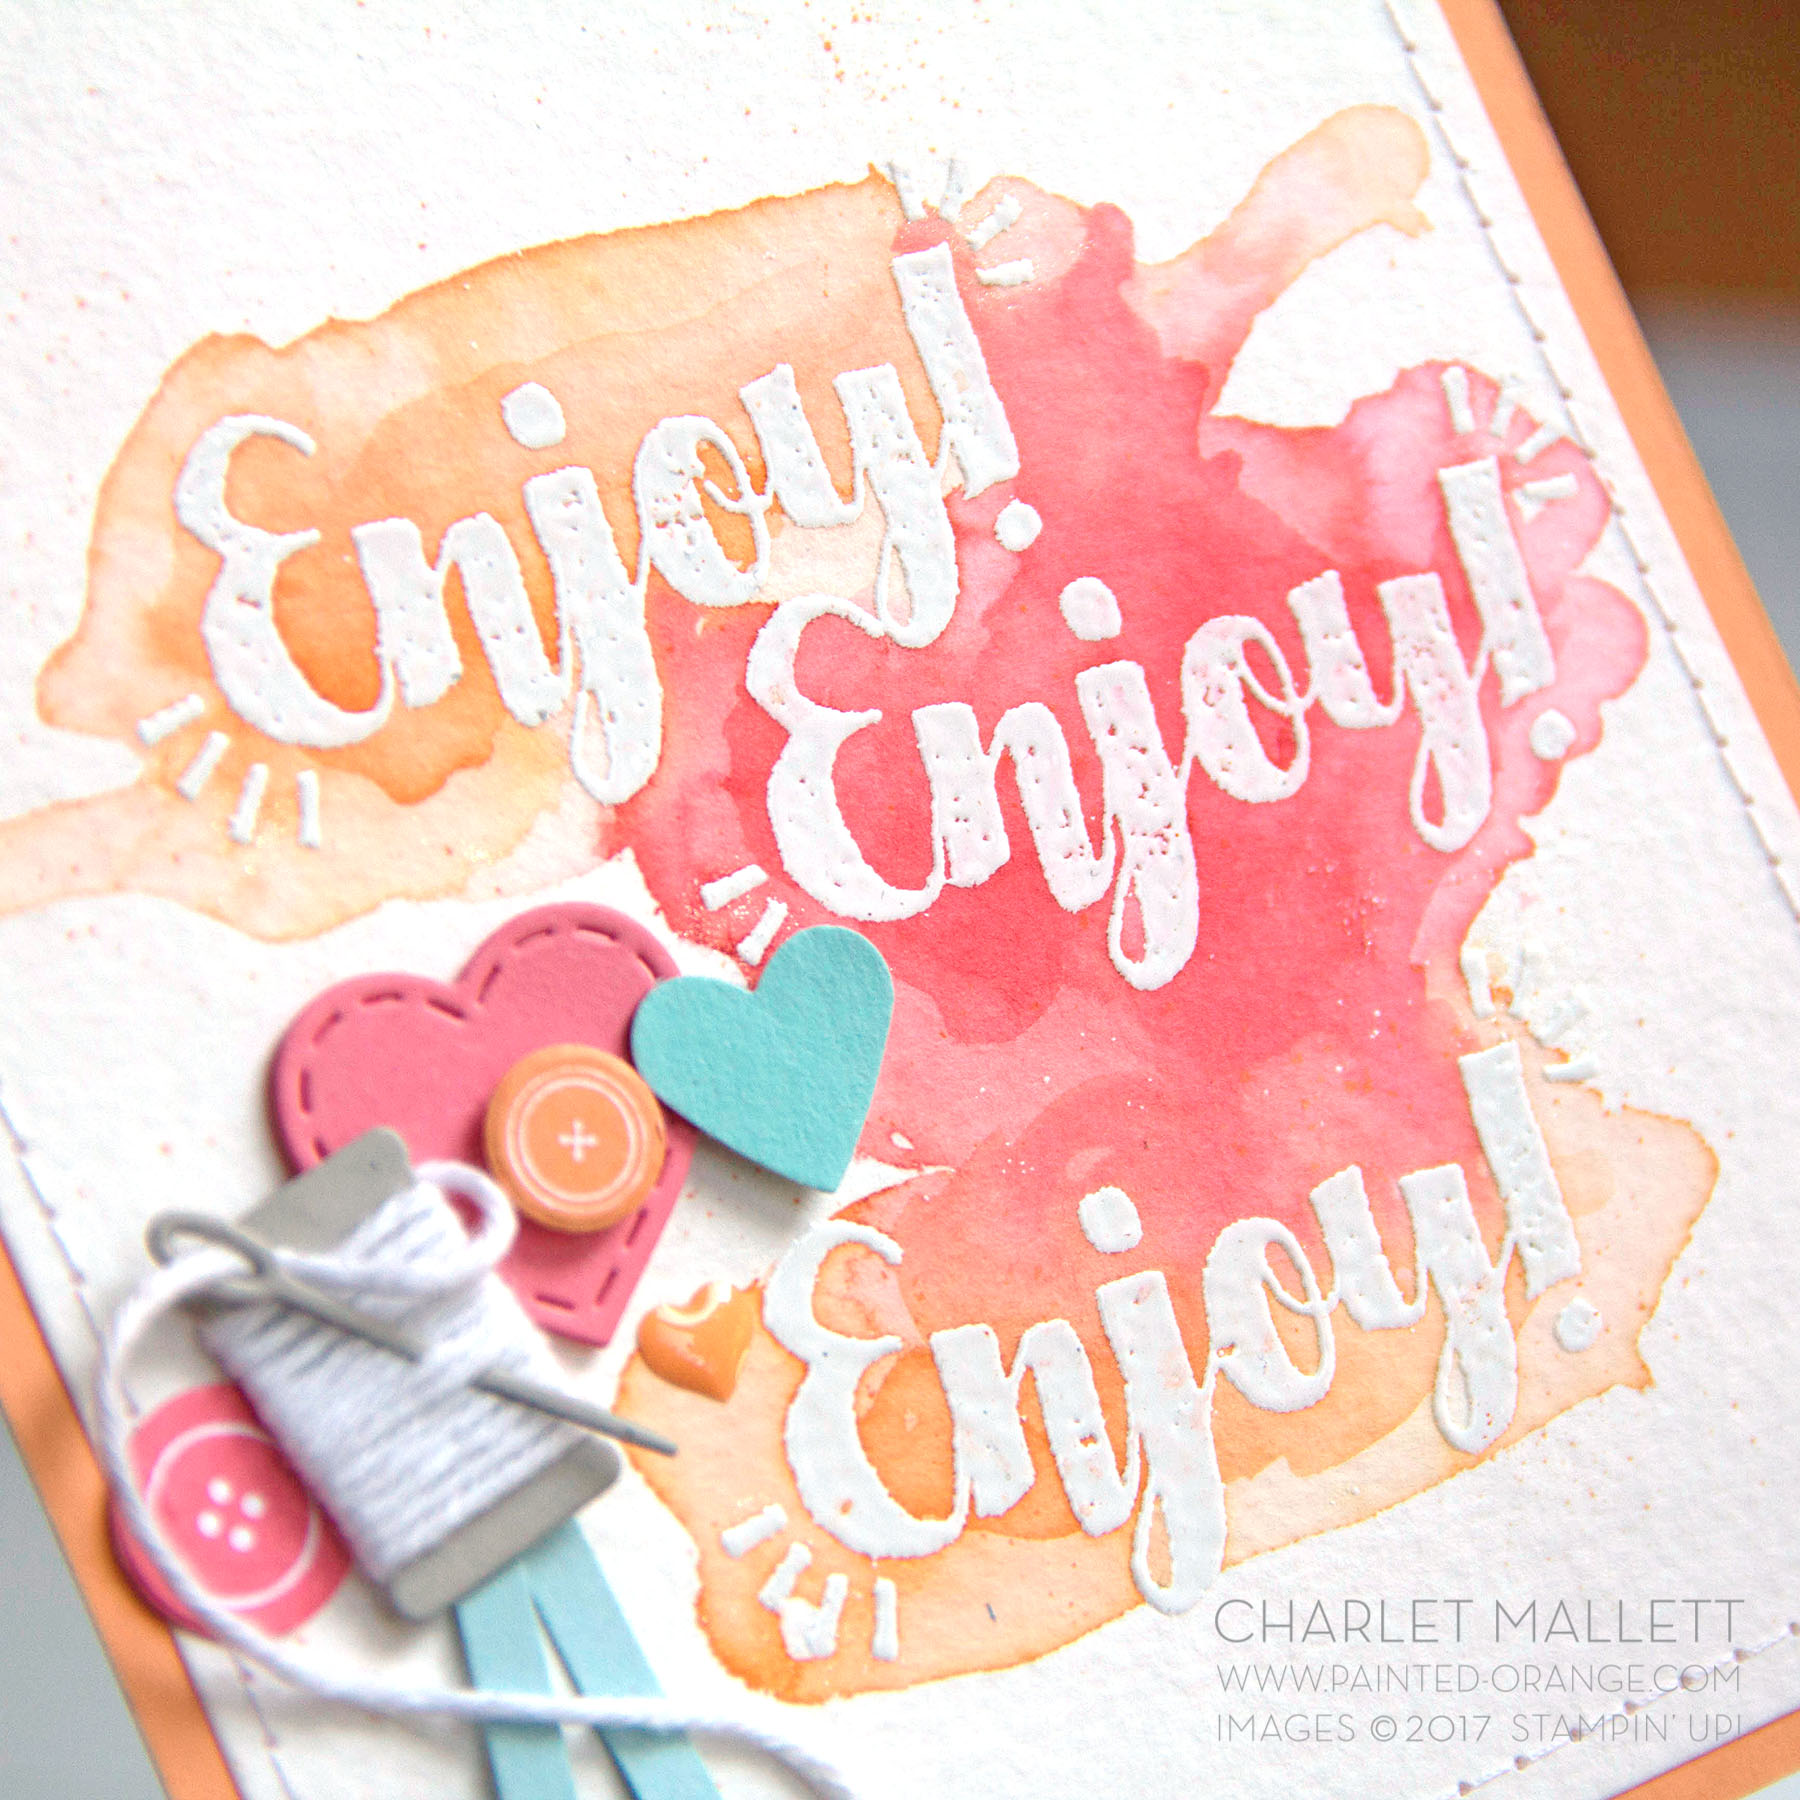 Tags & Trimmings stamp set - Charlet Mallett #GDP100